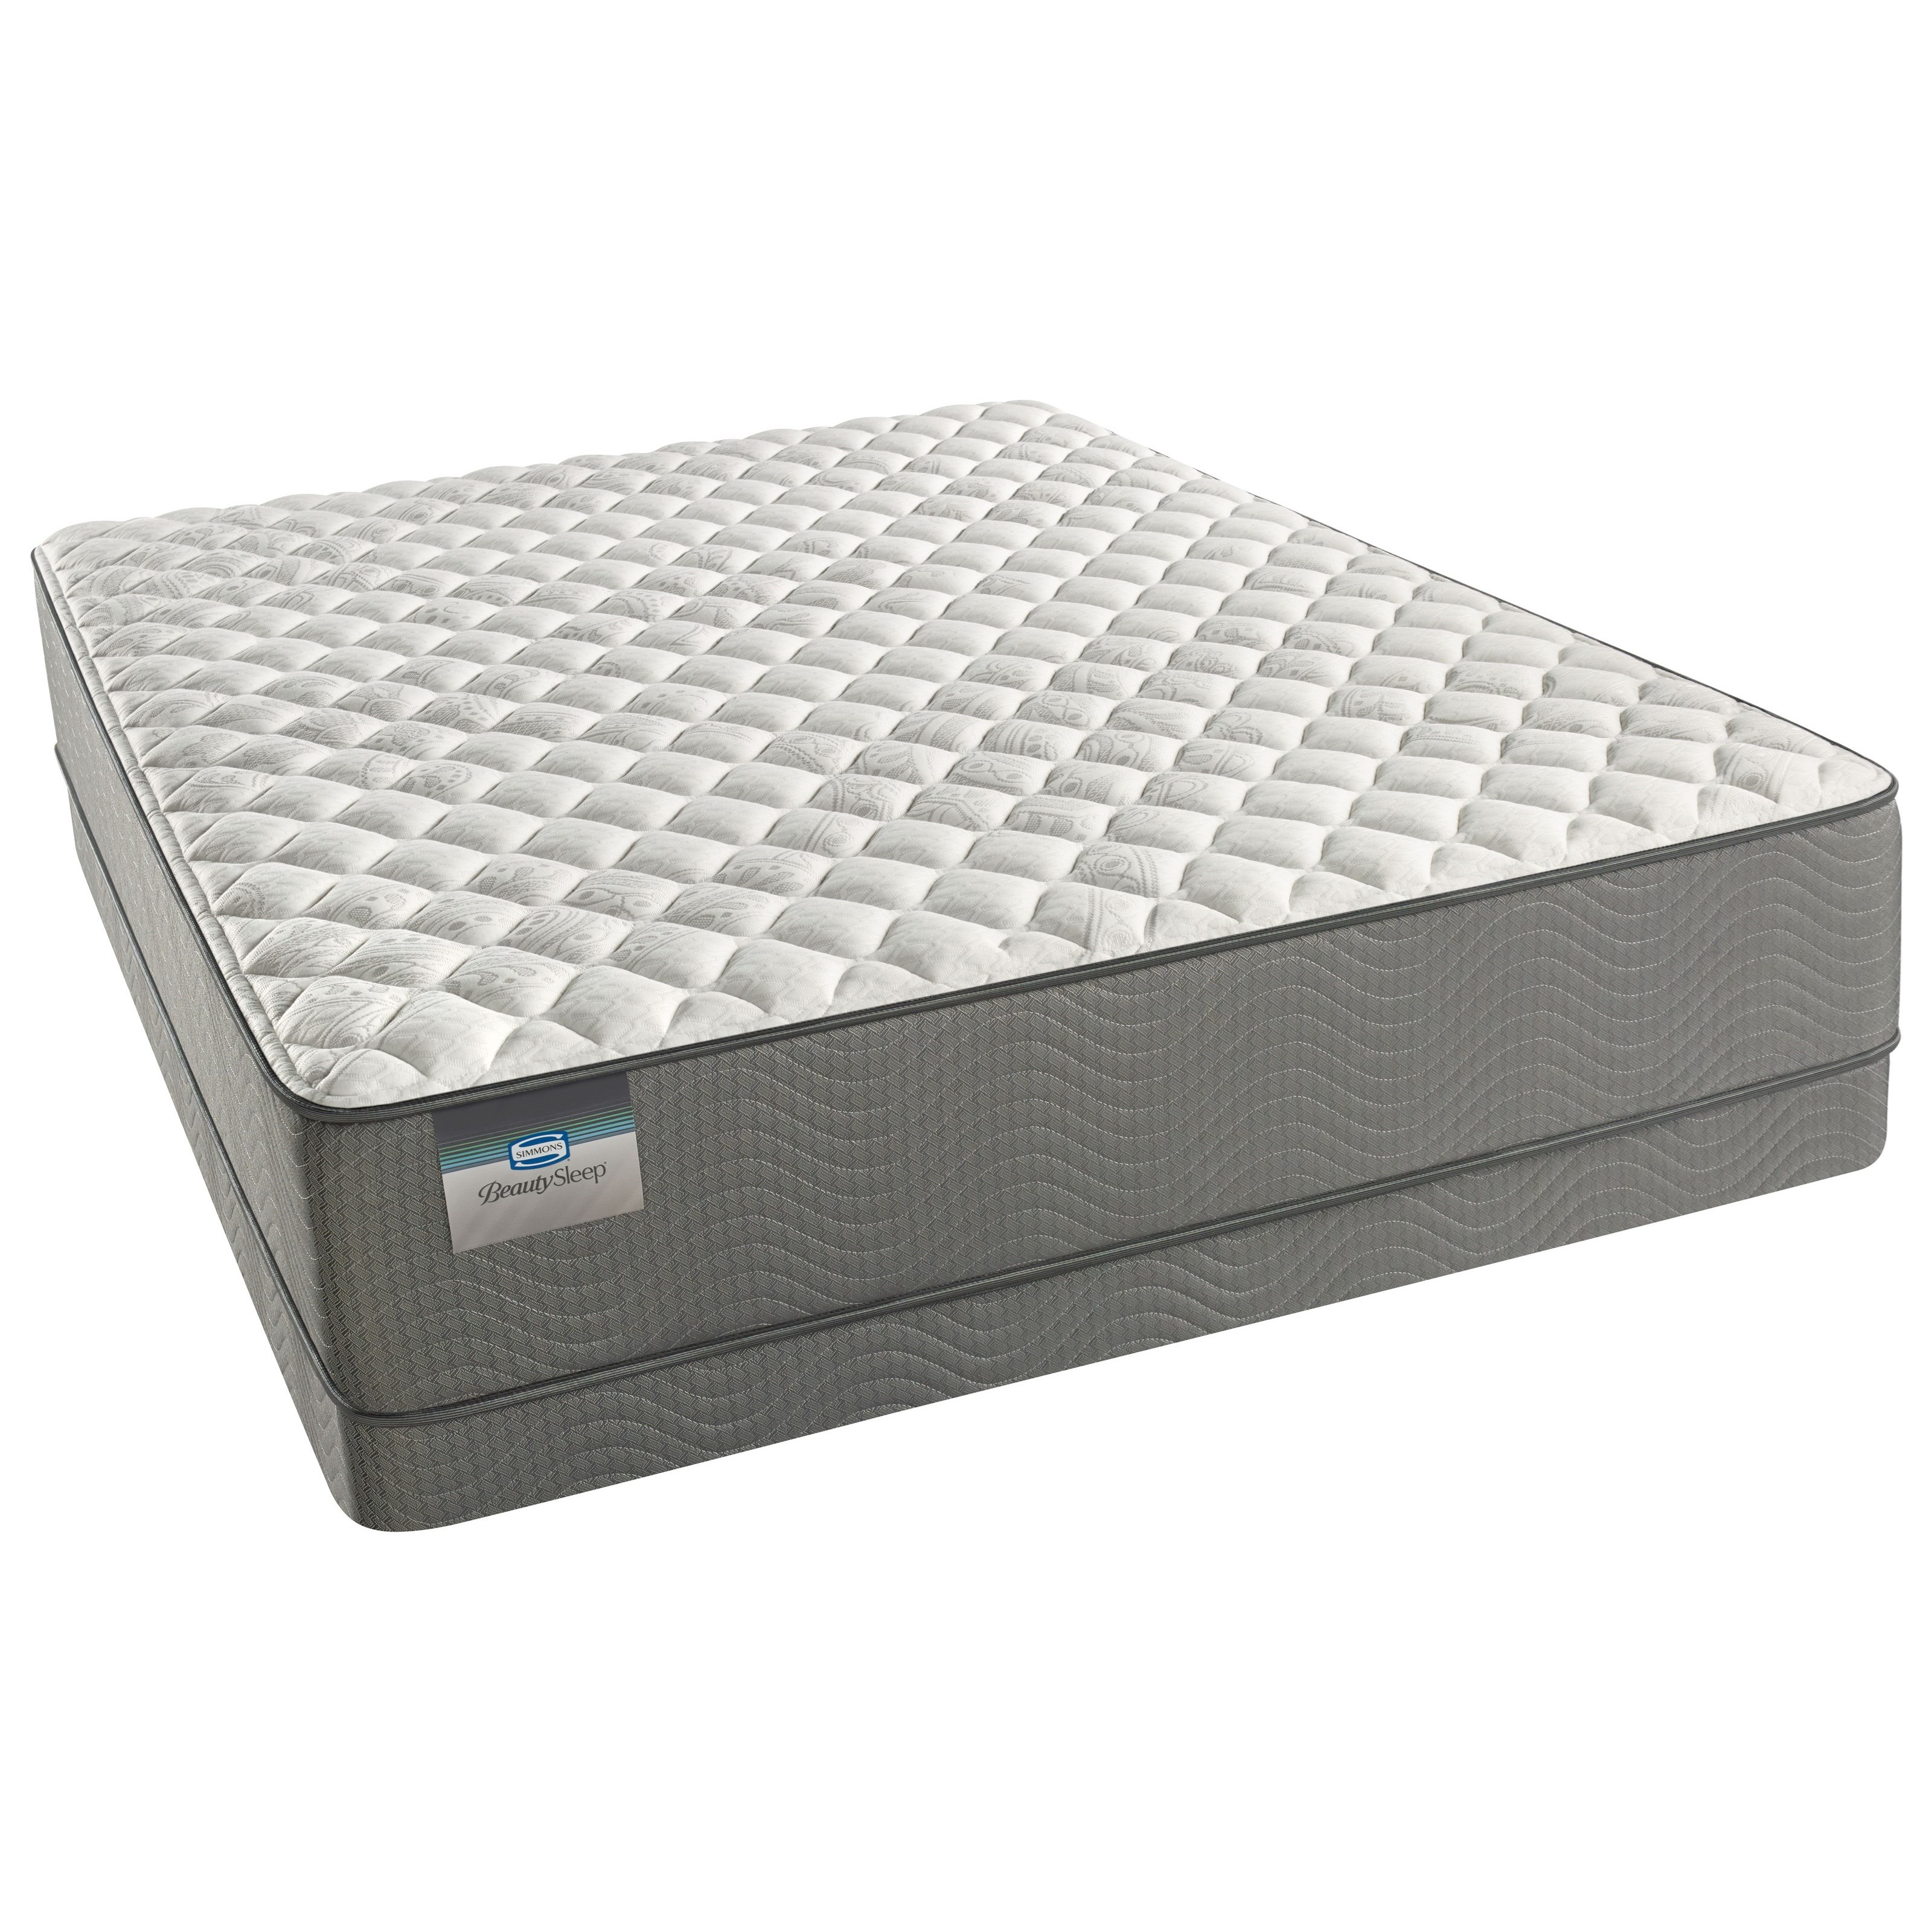 Beautyrest Beautysleep Beaver Creek Firm Beautyrest Beautysleep Twin XL Set - Item Number: 700600207-1020+700600212-6020